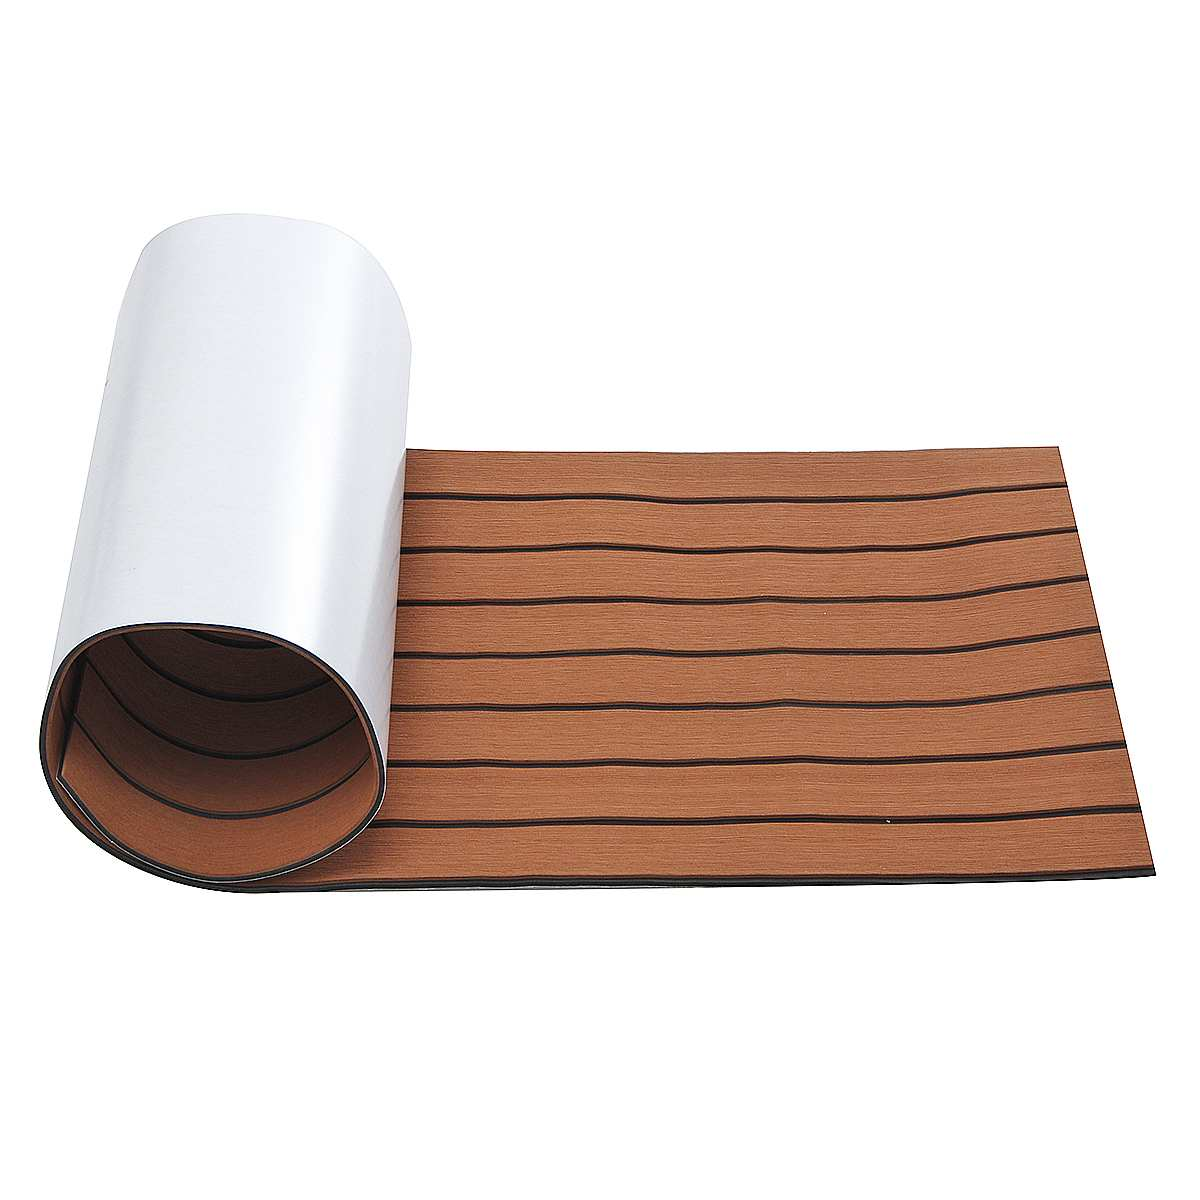 Vehicle-Pad Deck-Mat Teak Boat Yacht Flooring Self-Adhesive Matrecreational Brown EVA title=